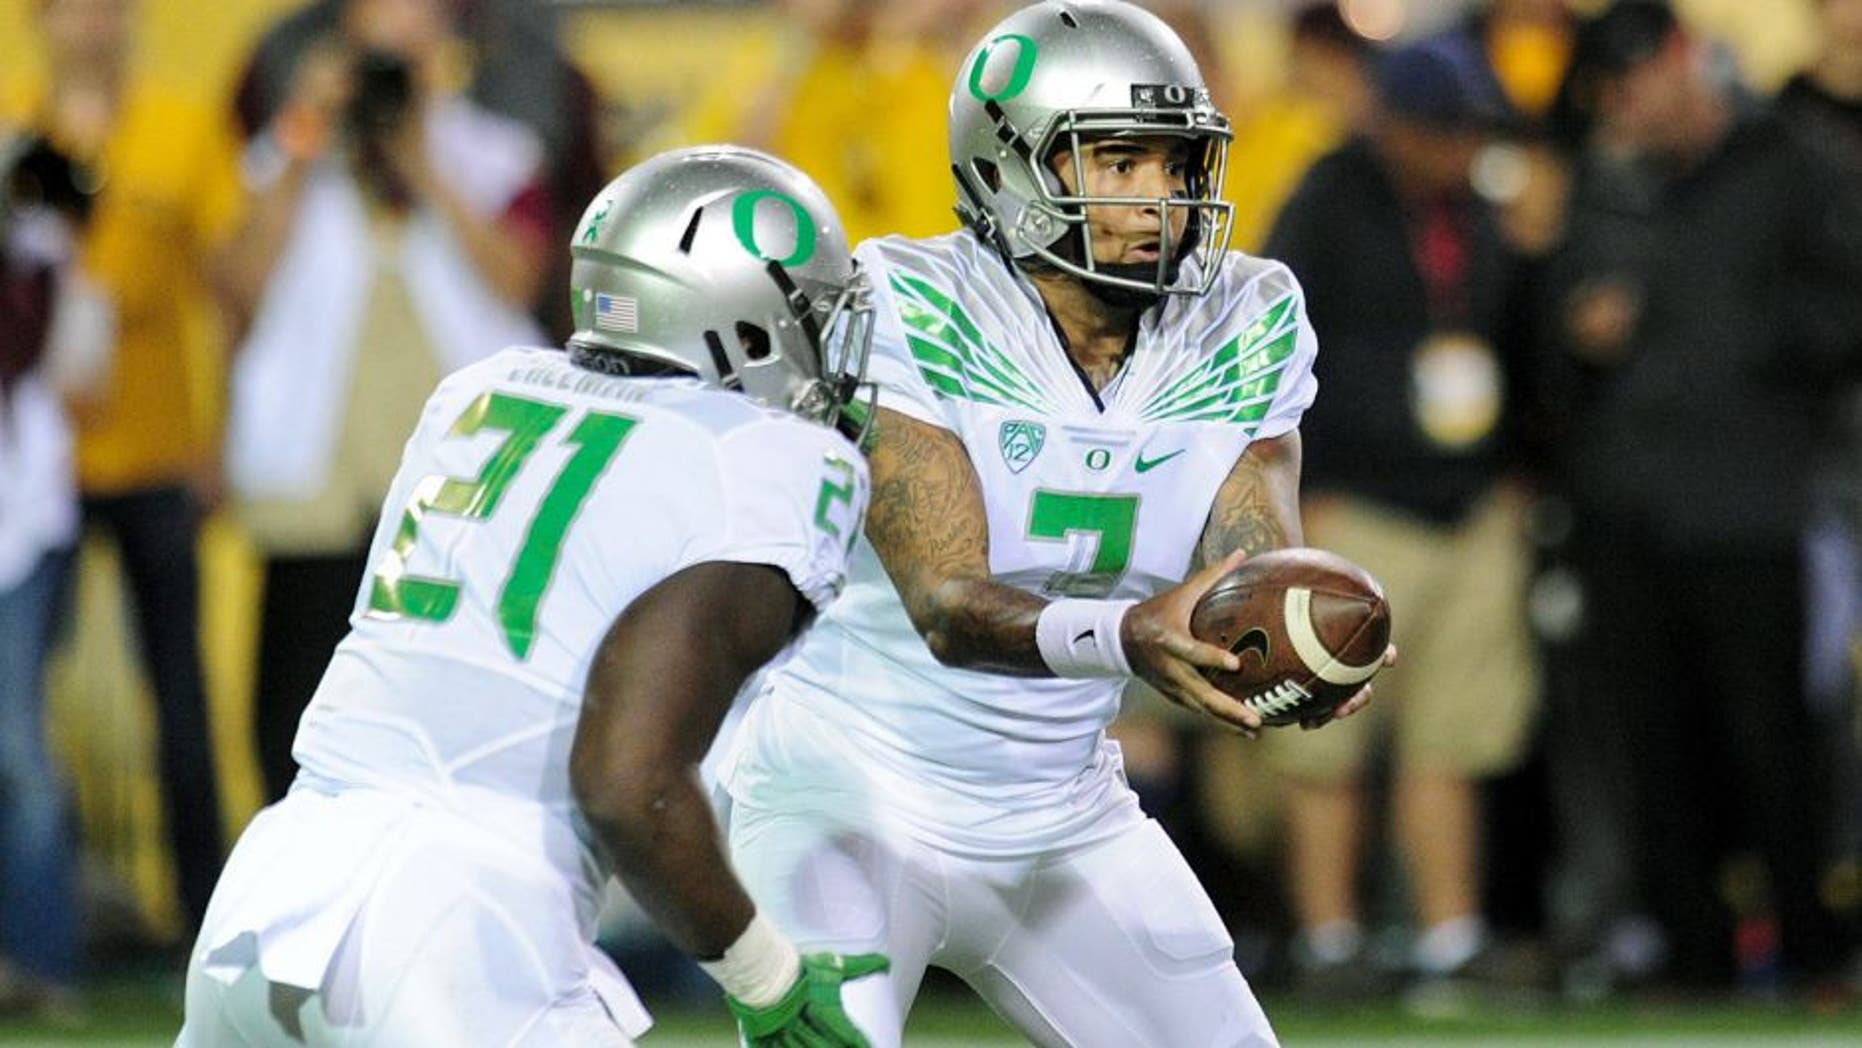 Oct 29, 2015; Tempe, AZ, USA; Oregon Ducks quarterback Vernon Adams Jr. (3) hands off to Oregon Ducks running back Royce Freeman (21) during the first half against the Arizona State Sun Devils at Sun Devil Stadium. Mandatory Credit: Matt Kartozian-USA TODAY Sports